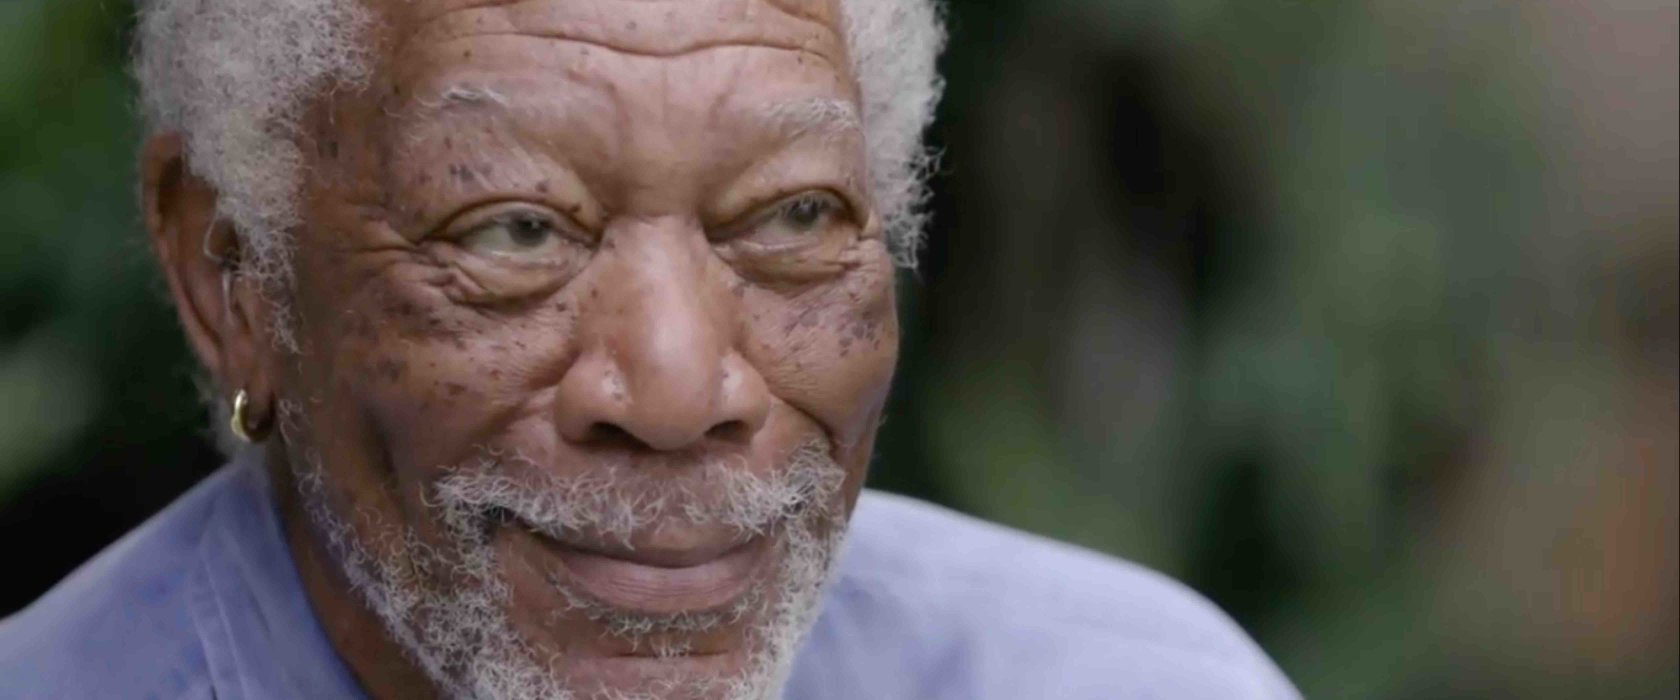 Morgan Freeman tells WISH: 'If we keep working together, we will heal'